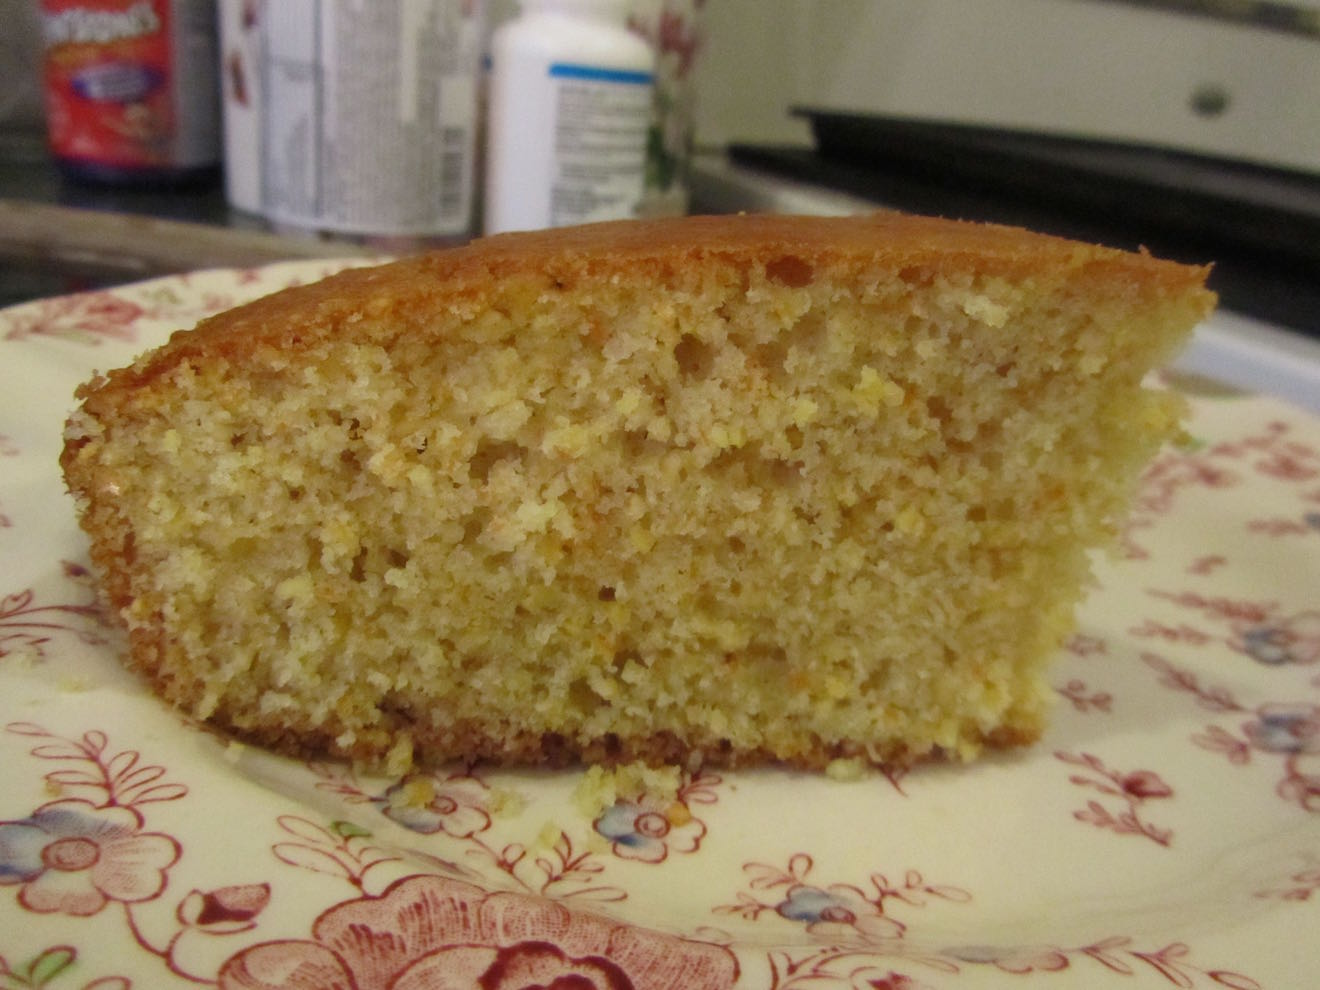 Creative savv all out of baking powder heres the substitute i tender cake like cornbread crispy crust but soft and cake like inside no baking powder just used baking soda and vinegar instead ccuart Choice Image